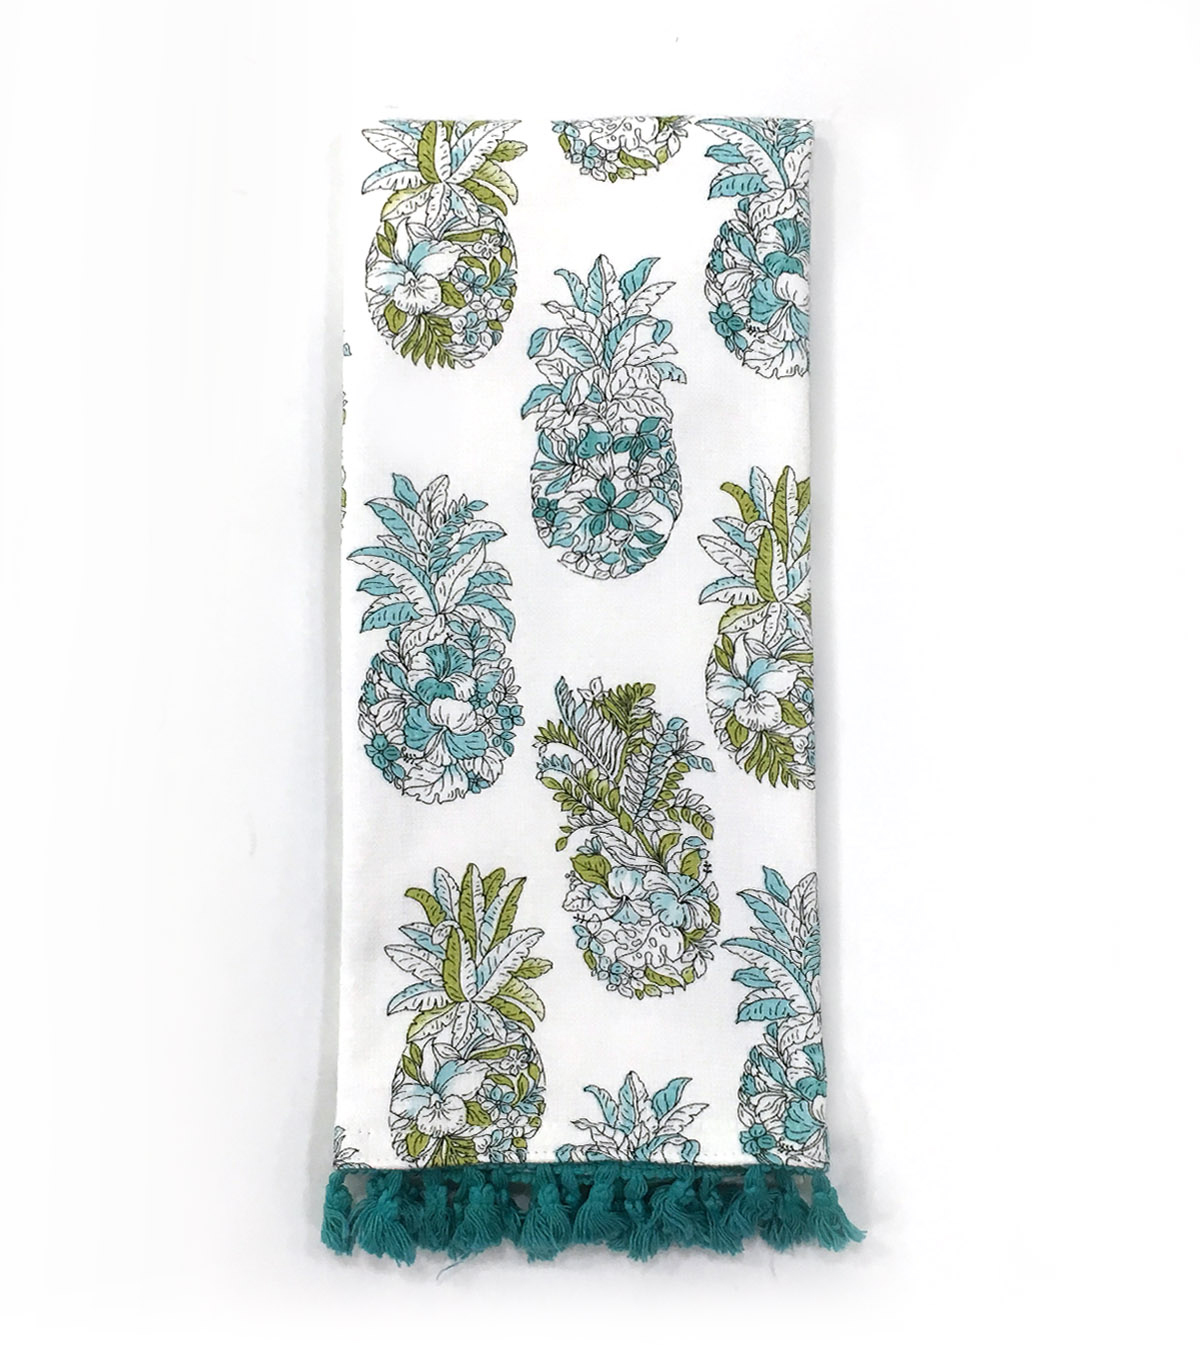 Patio Oasis Pineapples Towel